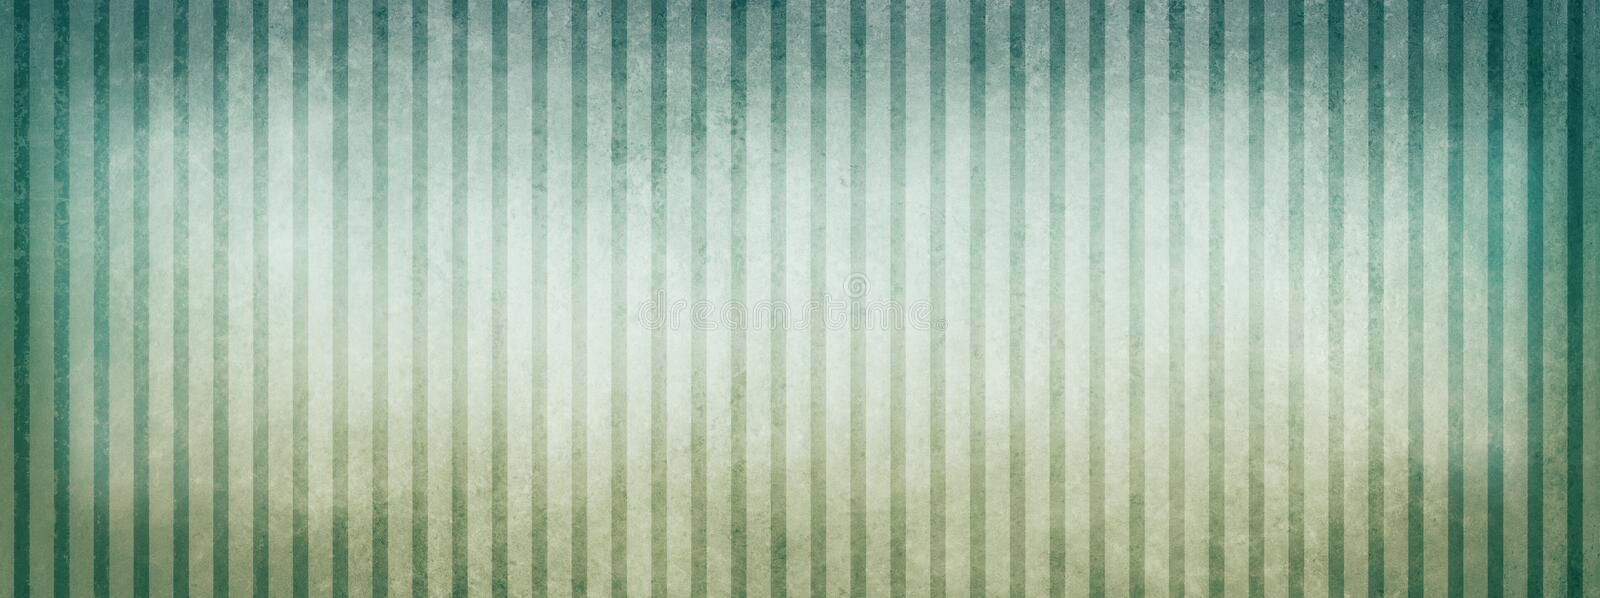 Blue green and white beige striped background with vintage texture design and vignette borders. Vintage blue green and white striped background design with faded stock illustration